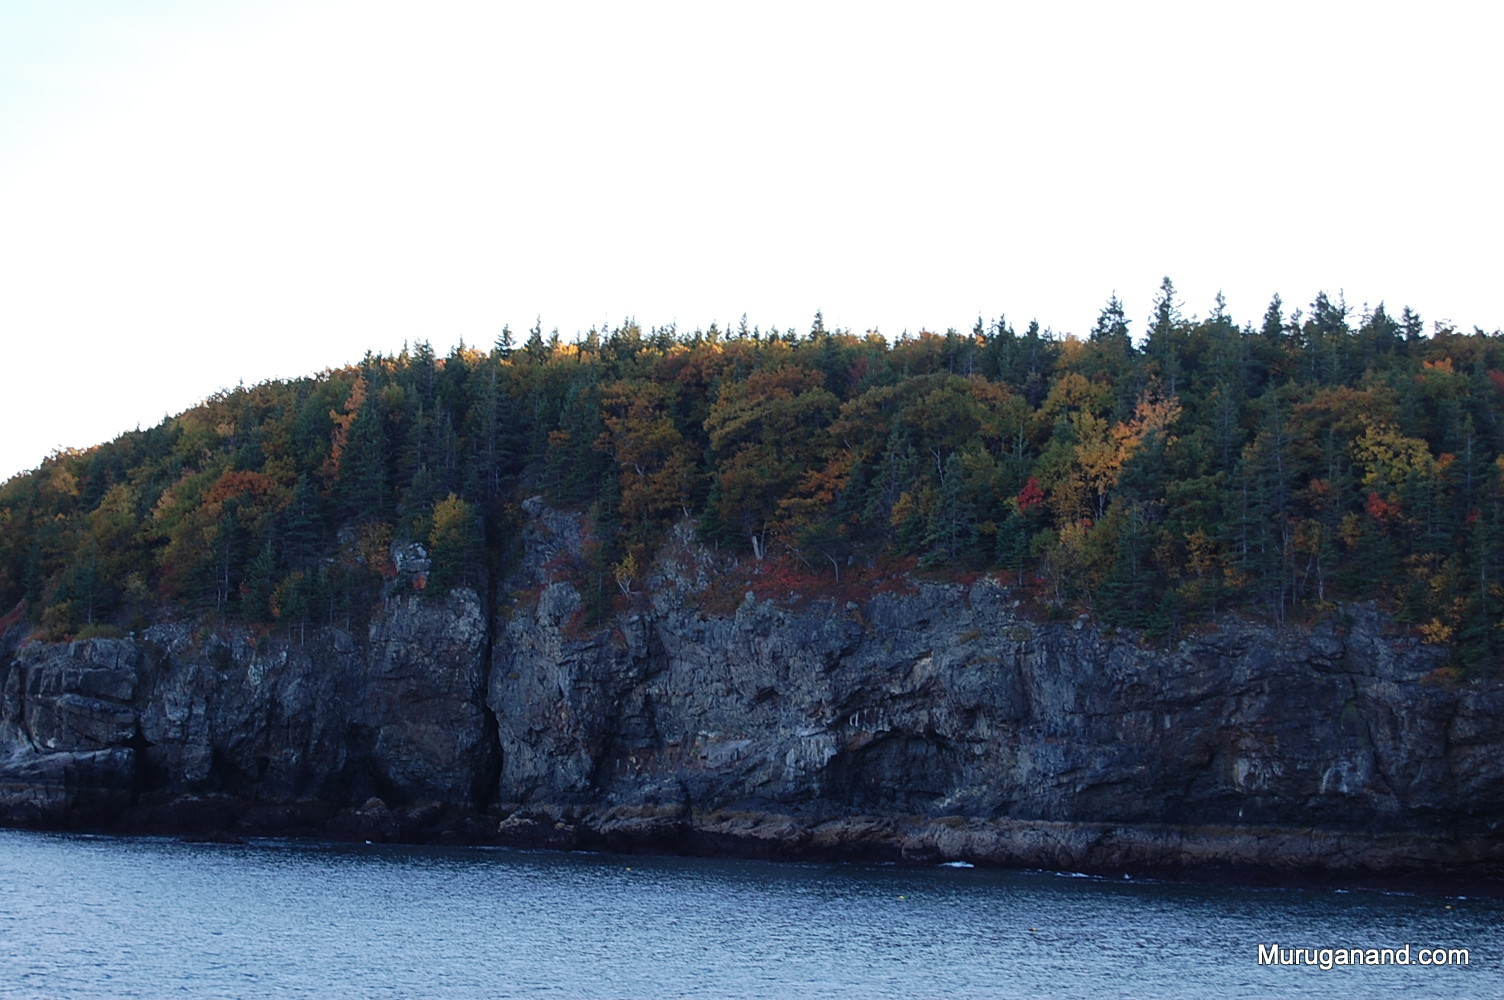 One of the porcupine islands.